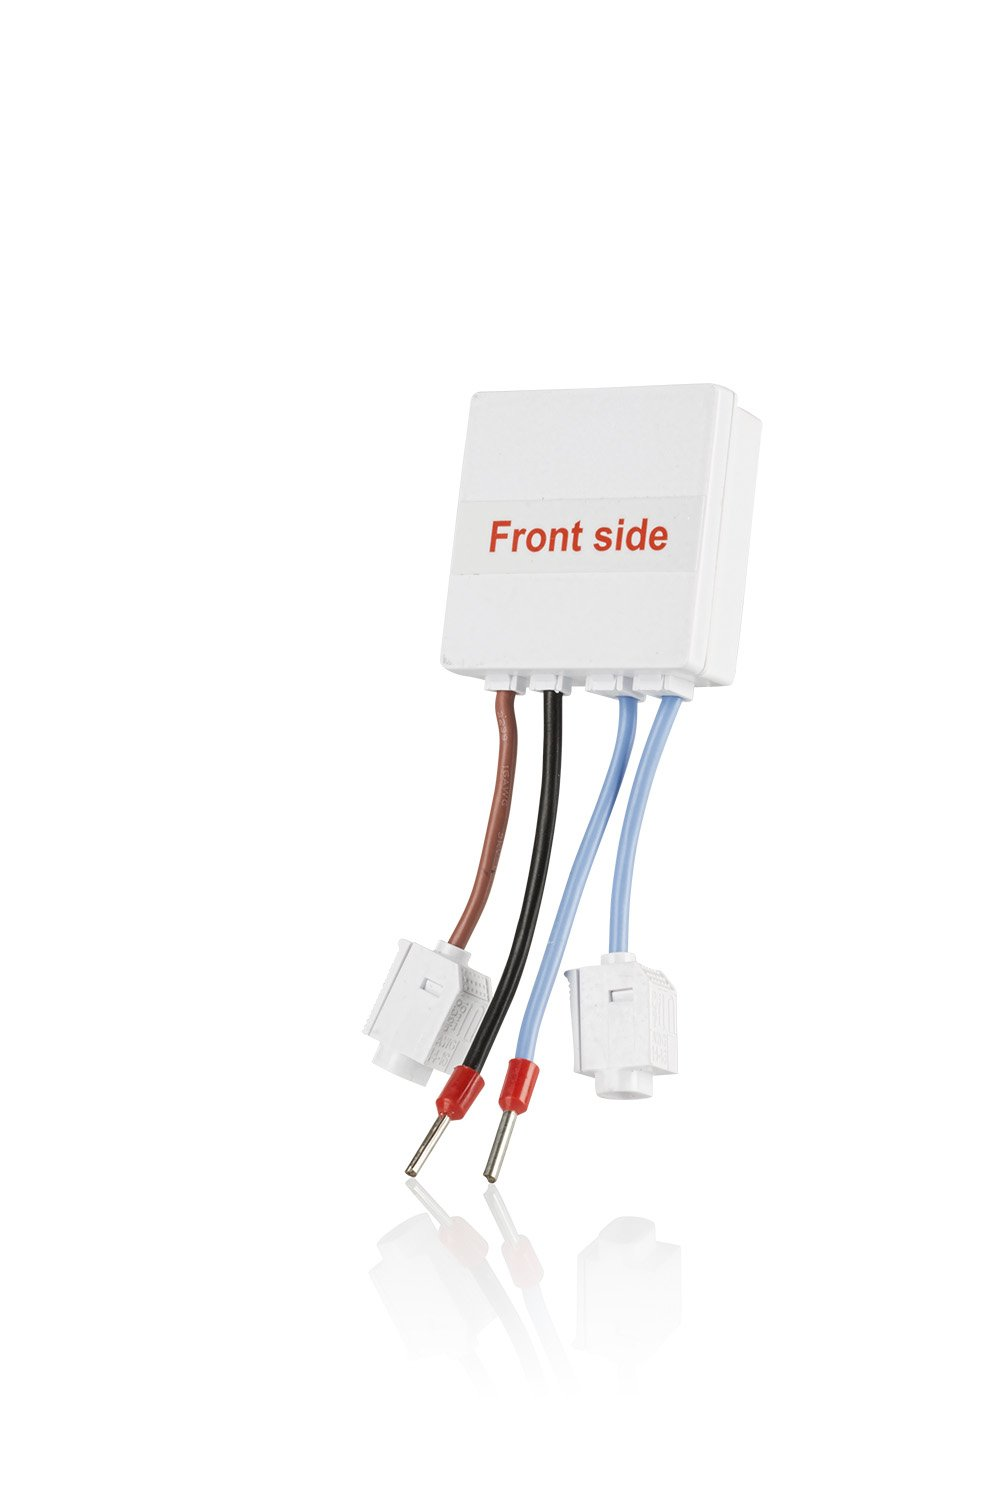 Trust Smart Home AWS-3500 Mini Built-In Mains Switch to Make an Existing Mains Socket Wireless (max. 3500 Watt) 71100